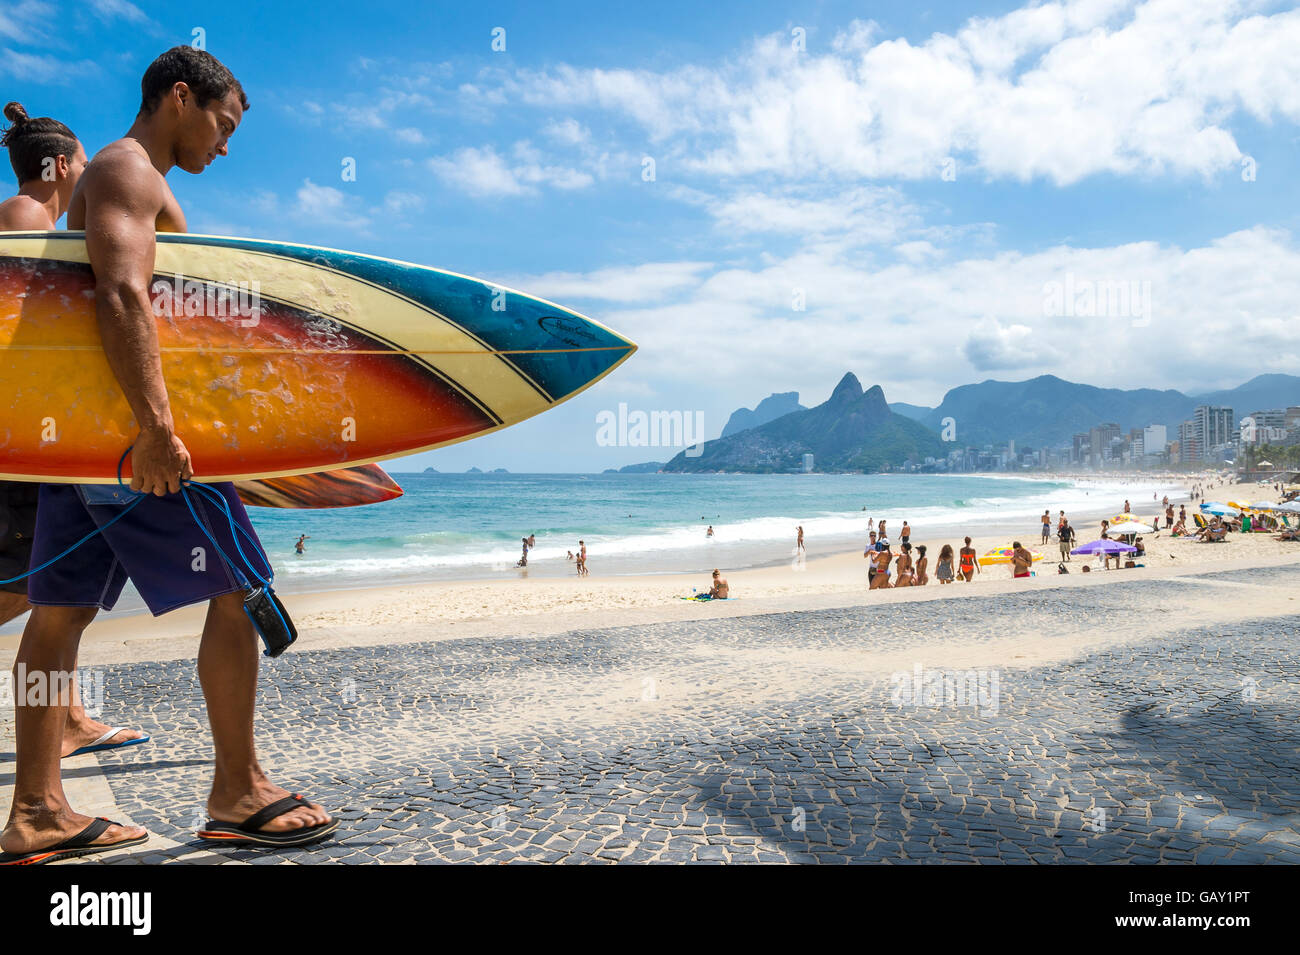 RIO DE JANEIRO - APRIL 3, 2016: Young carioca Brazilian couple walks with surfboards Arpoador, the popular surf - Stock Image